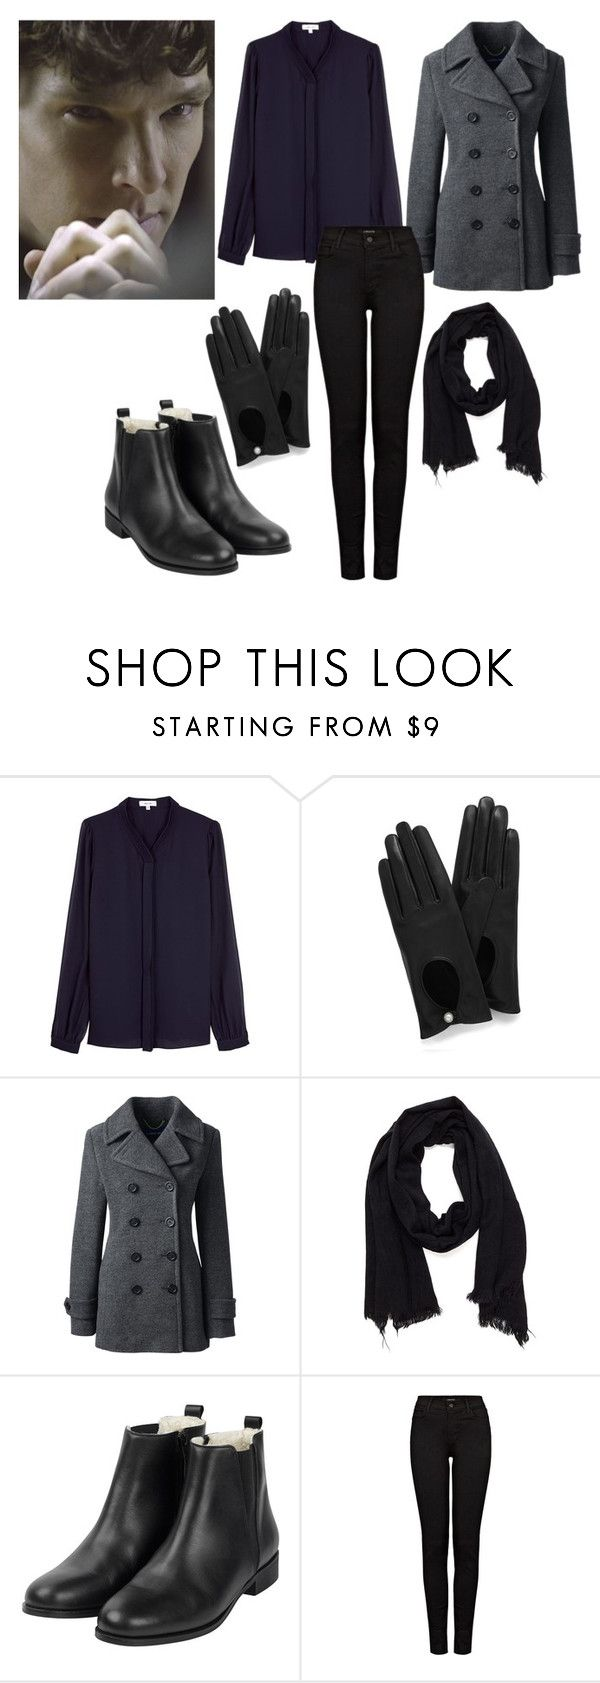 """""""Sherlock inspired outfits - Sherlock Holmes"""" by cheshirecat03 ❤ liked on Polyvore featuring Reiss, Mulberry, Lands' End and J Brand"""